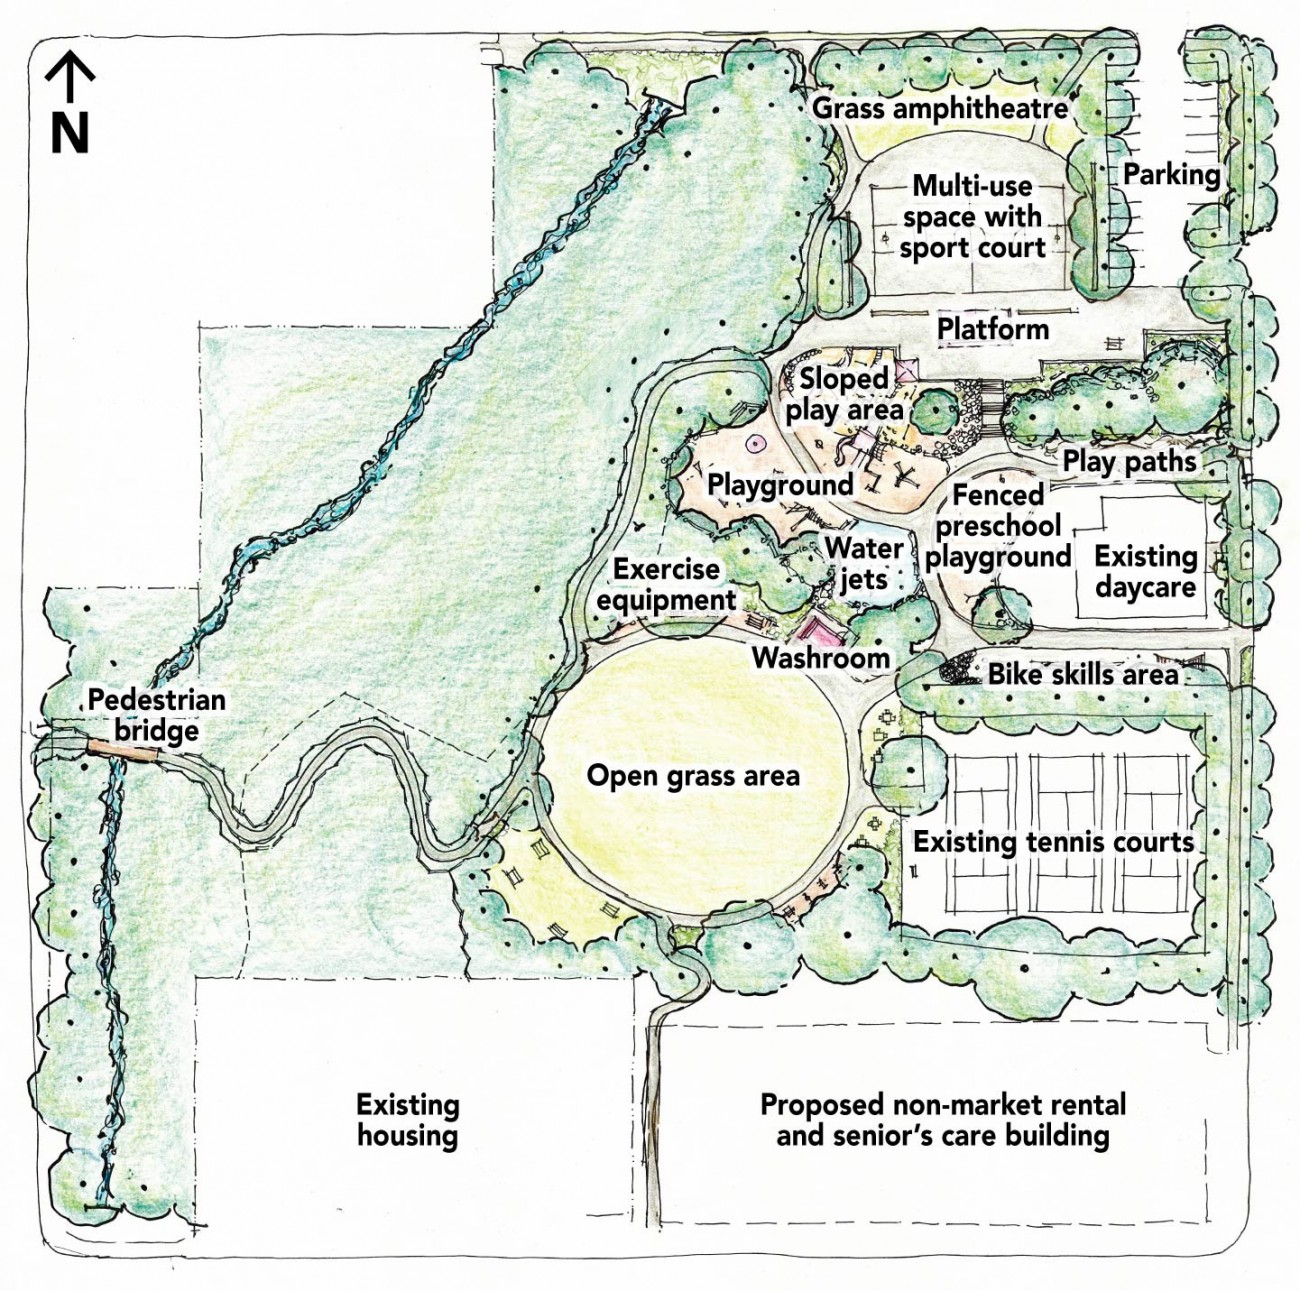 Proposed plan for new park on the old Delbrook Lands